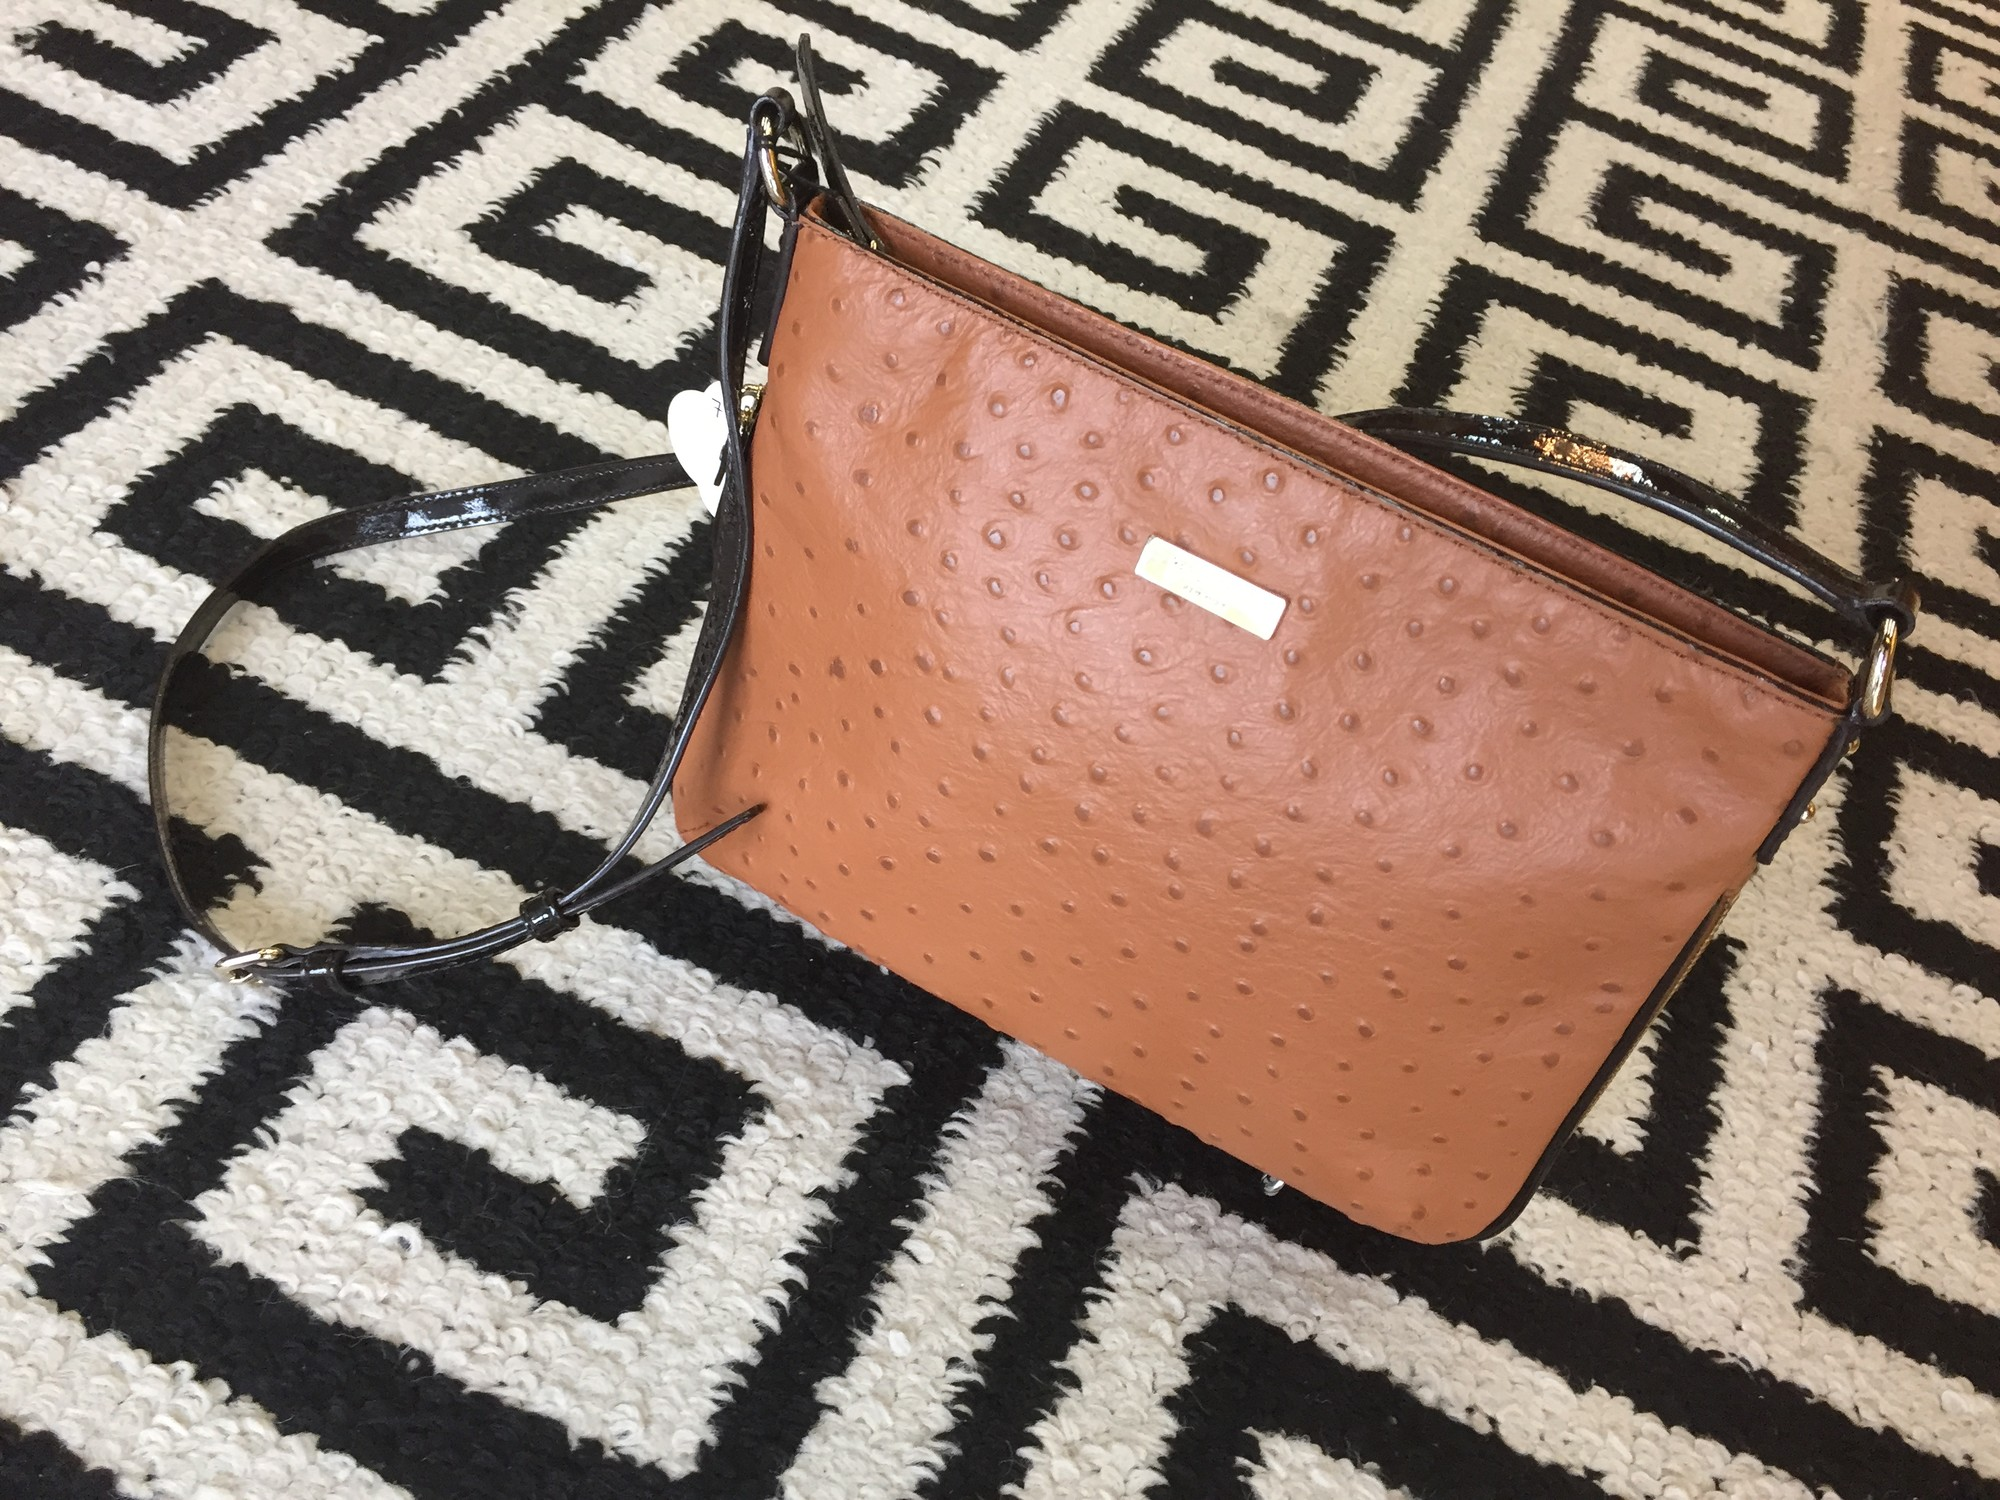 Brand New Kate Spade crossbody with dark caramel ostrich leather trimmed in dark chocolate patent leather. Has purse width extender with gold hardware. Interior lining is 100% polyester and there is no sign of use. This bag is in PERFECT condition. Retail: $299